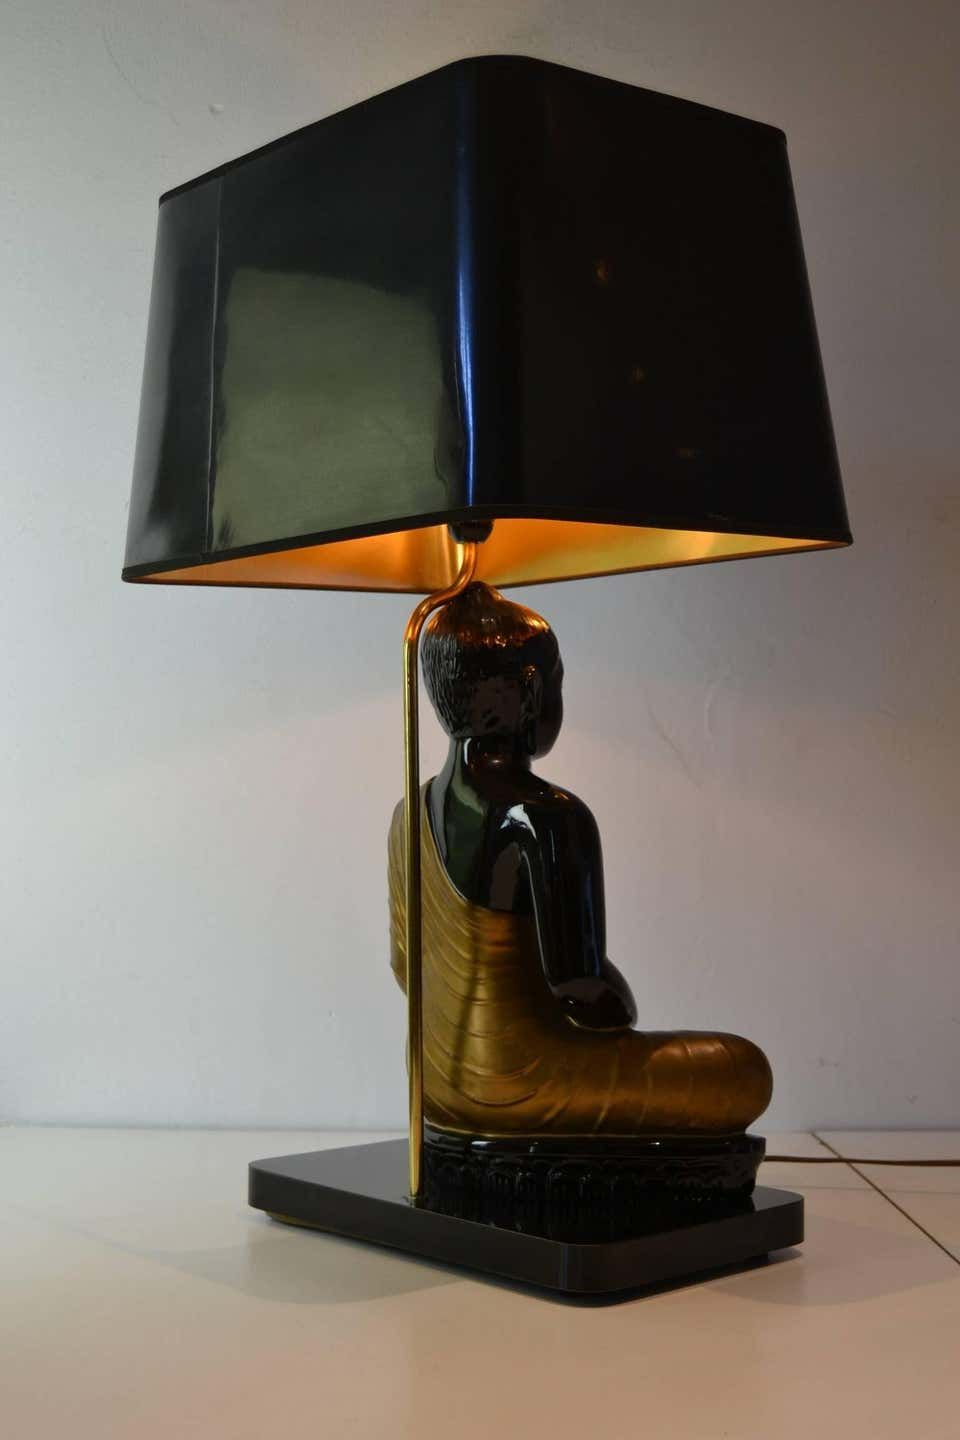 Large Buddha Table Lamp Black And Gold Europe 1970s Table Lamp Unusual Table Lamps Lamp